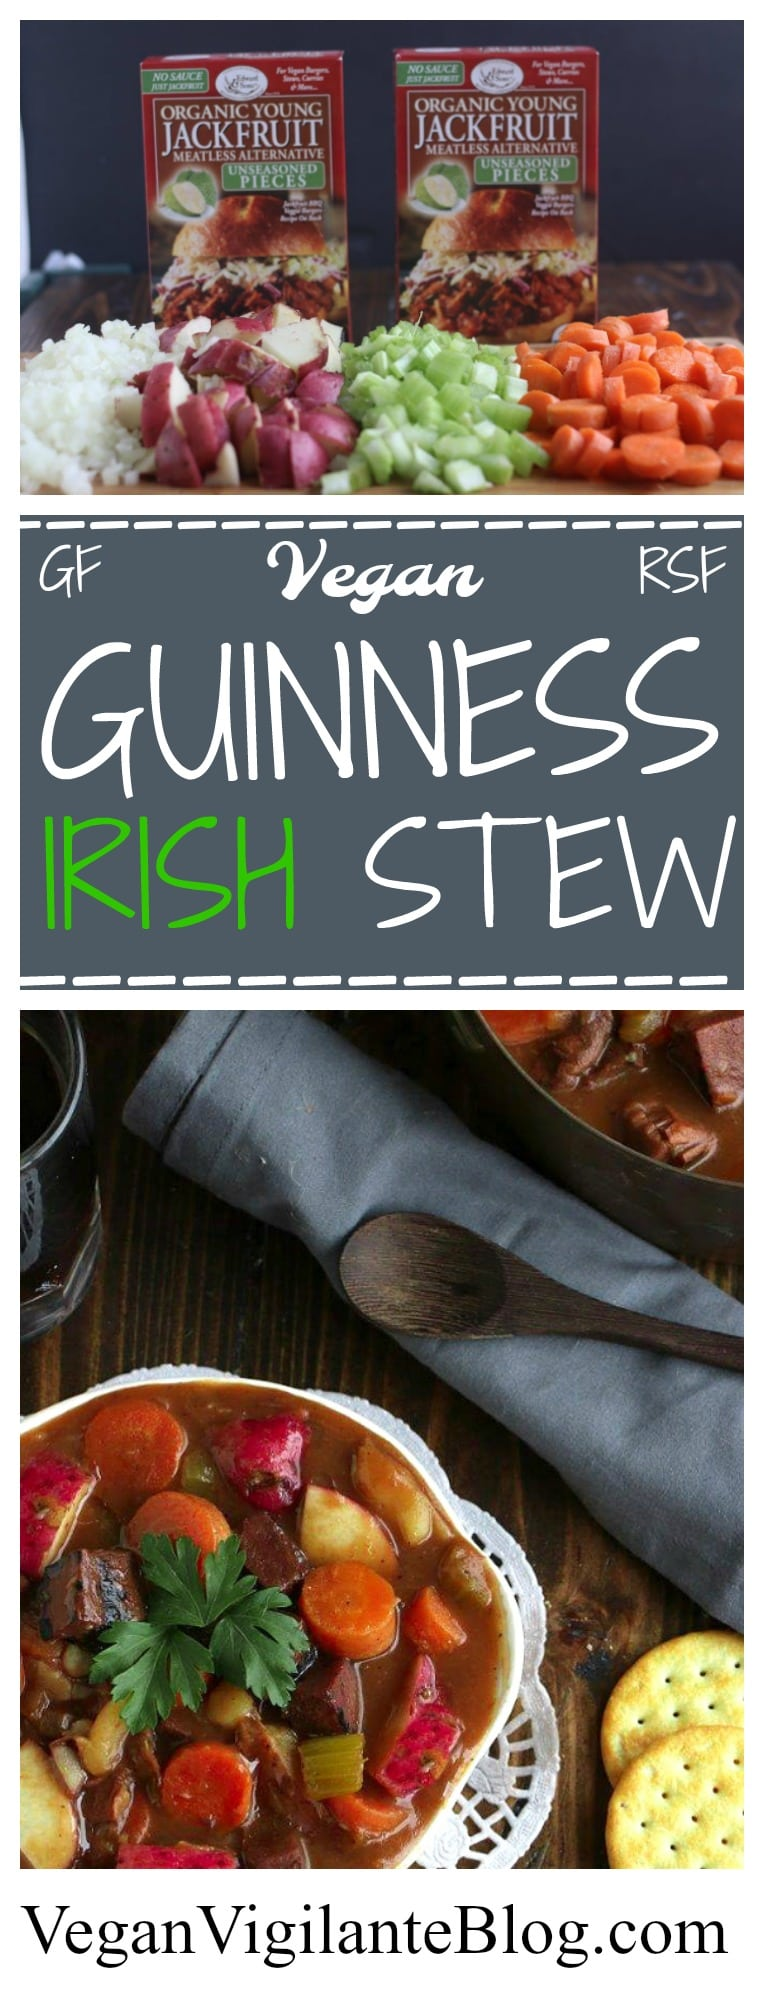 Guinness Irish Stew